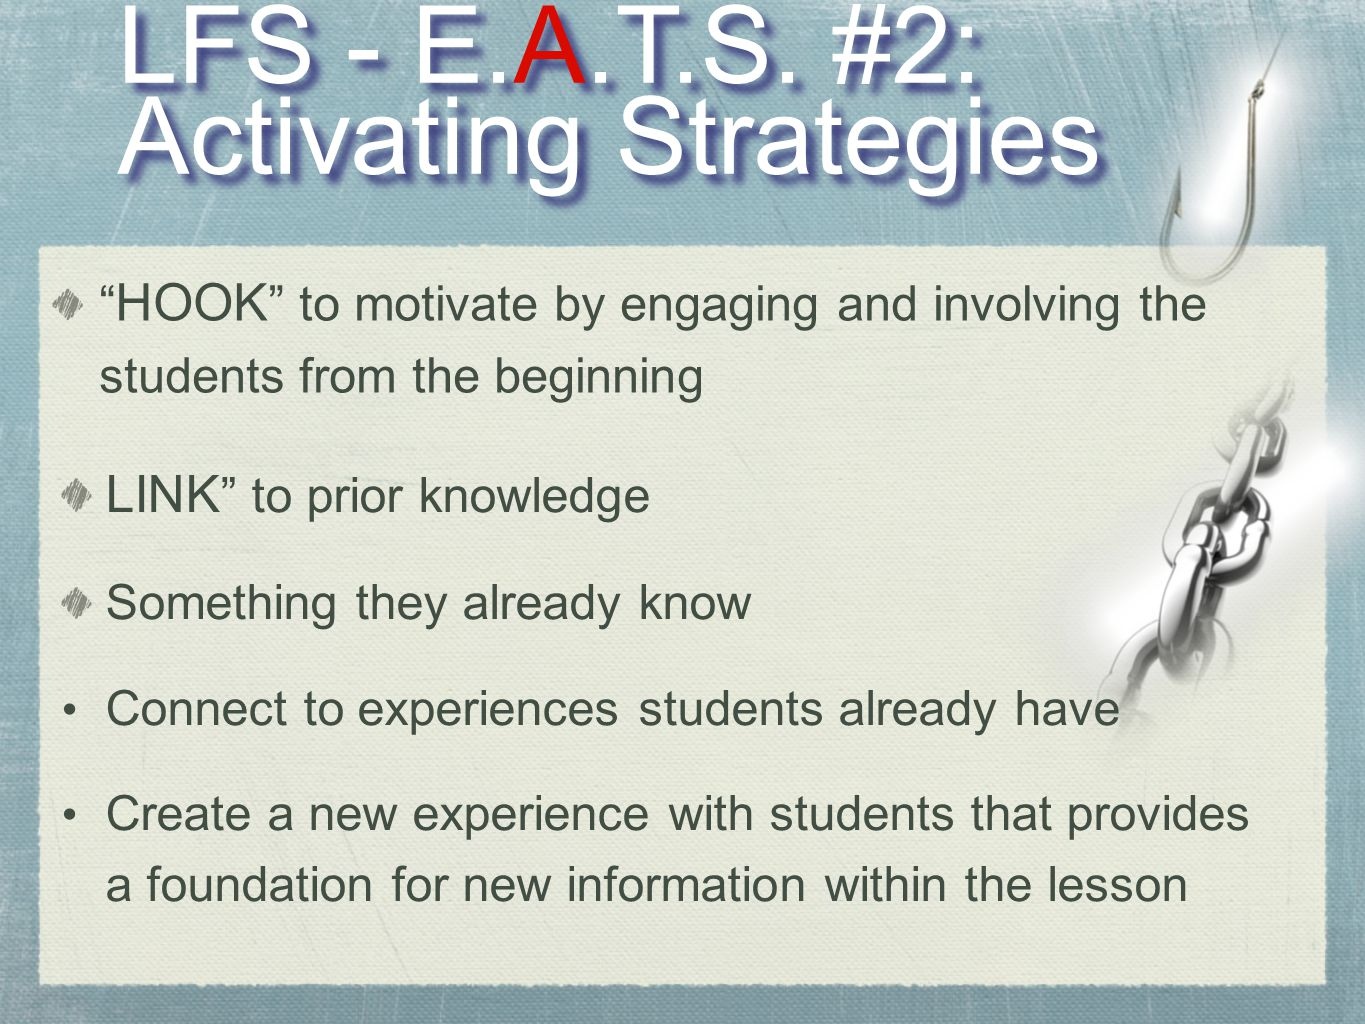 LFS - E.A.T.S. #2: Activating Strategies LFS - E.A.T.S.